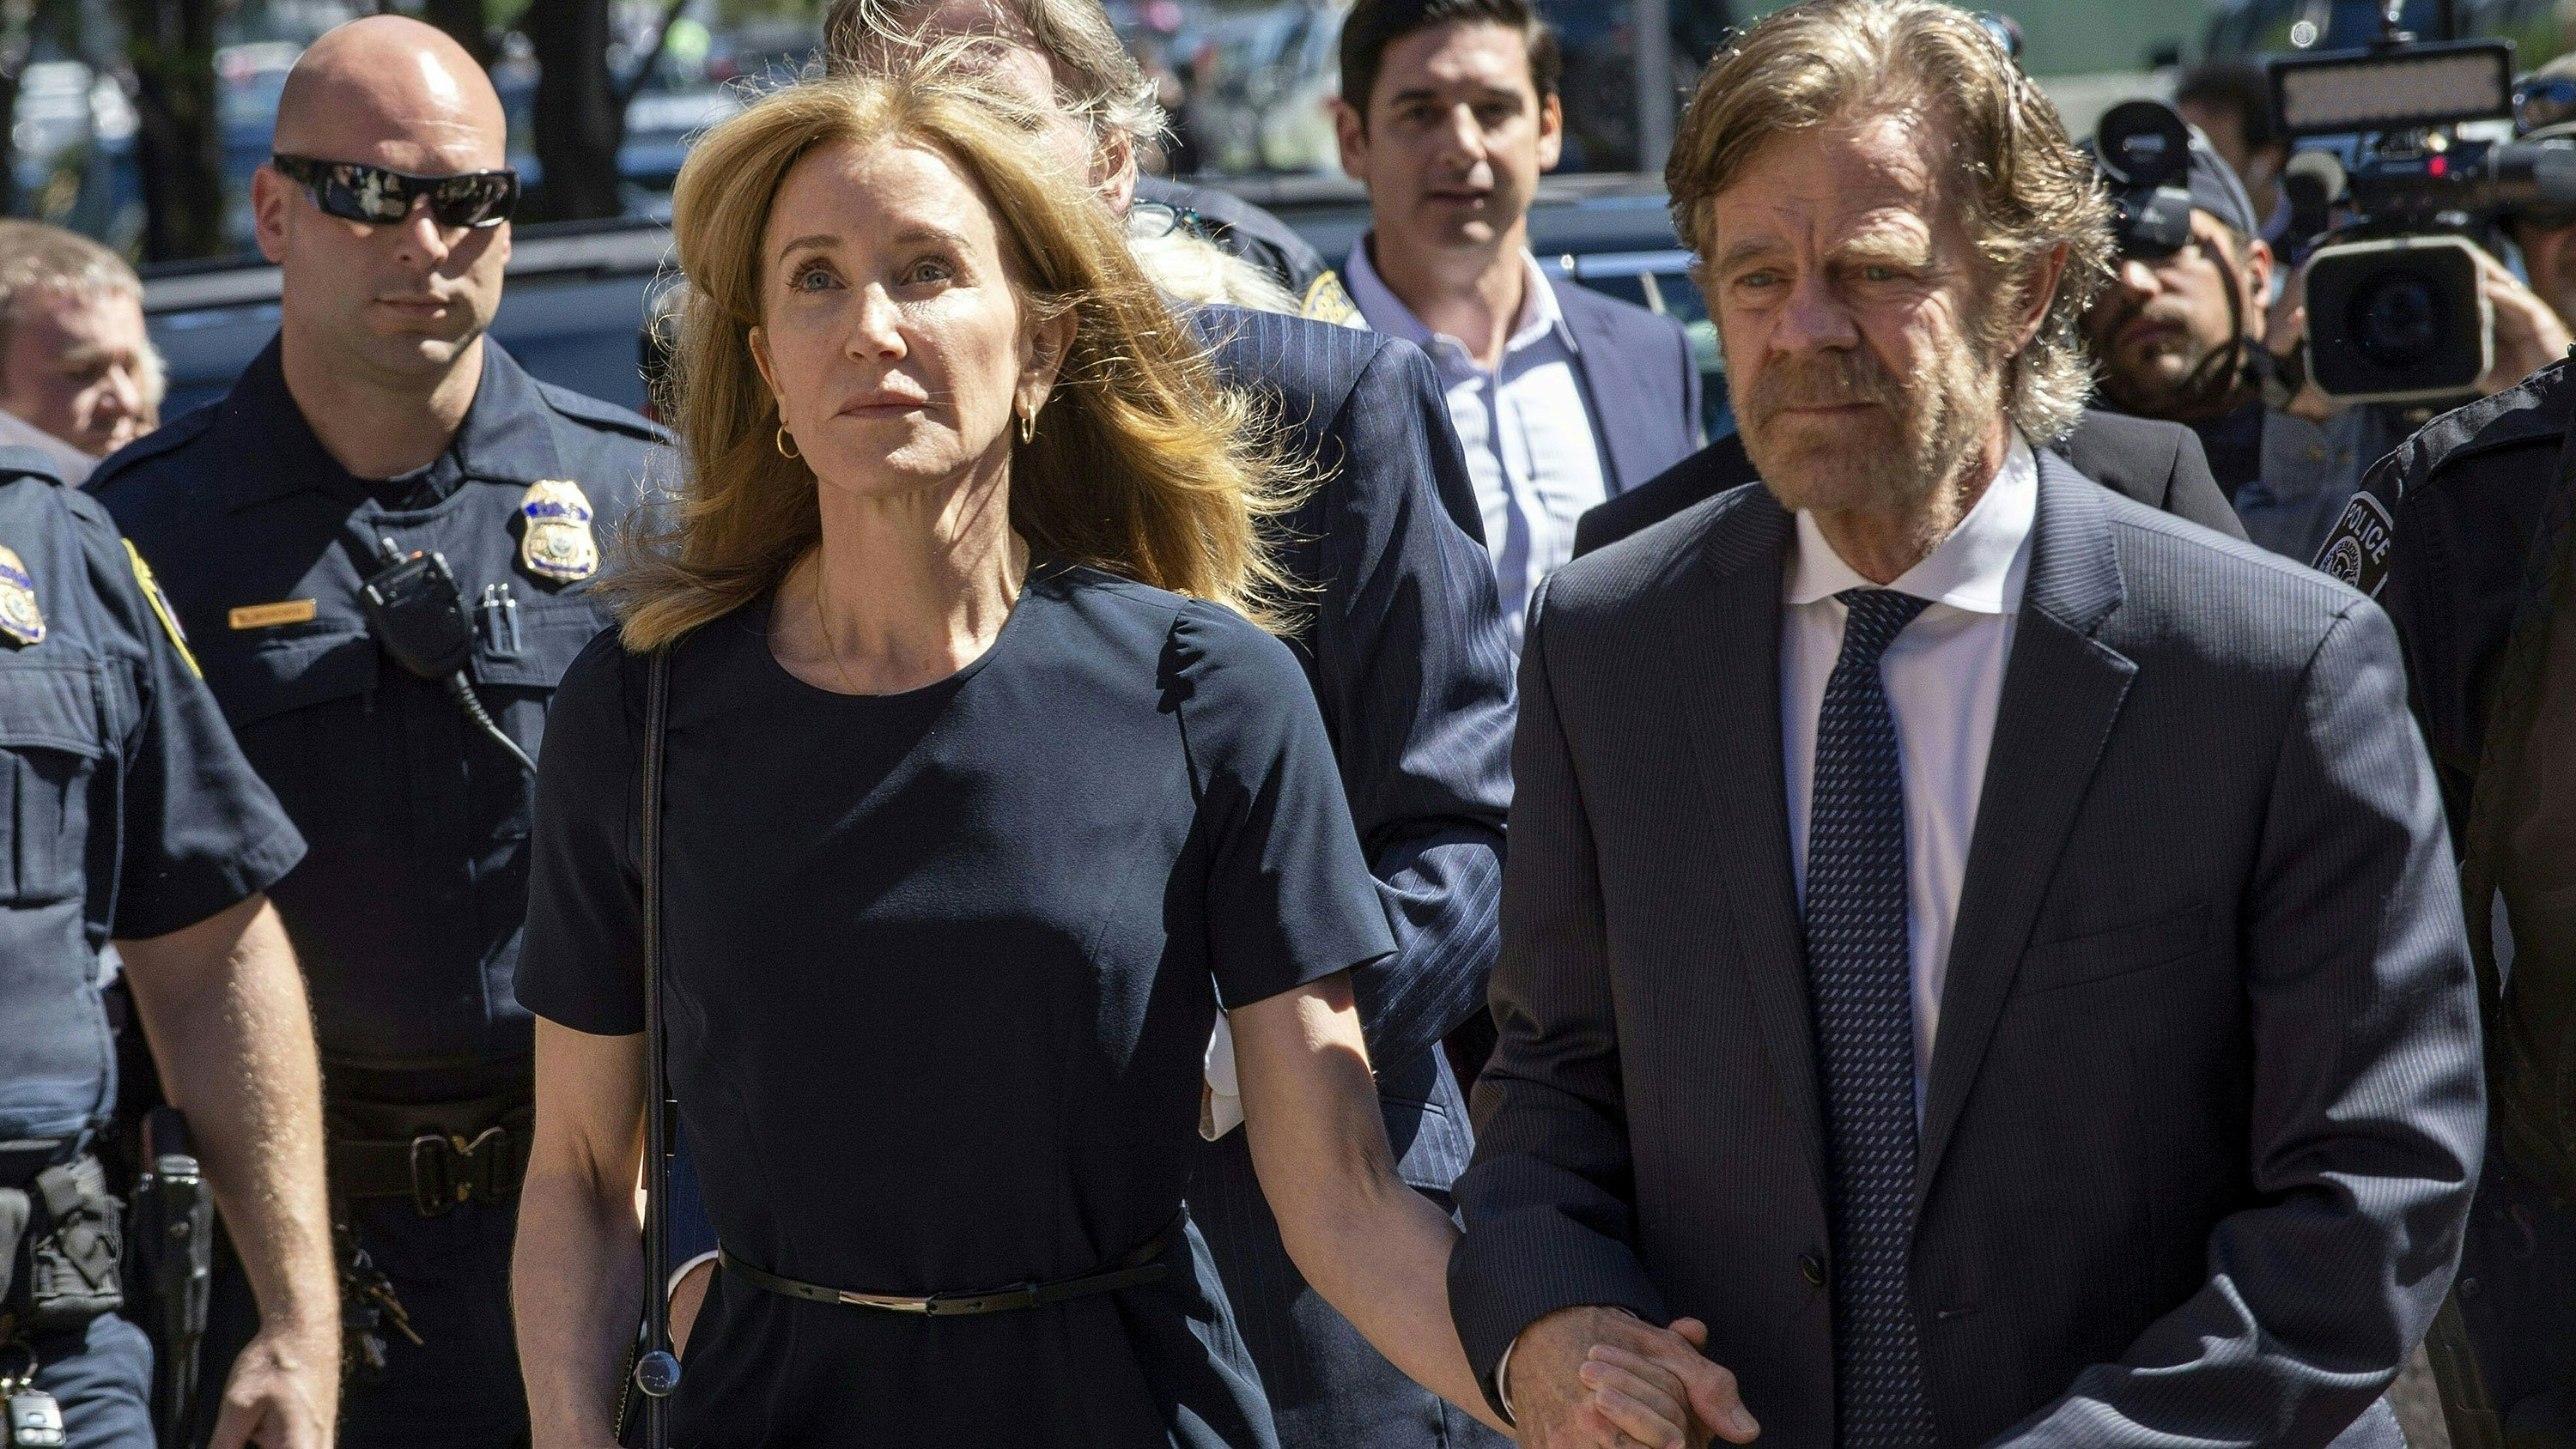 Here's what Felicity Huffman said at her sentencing